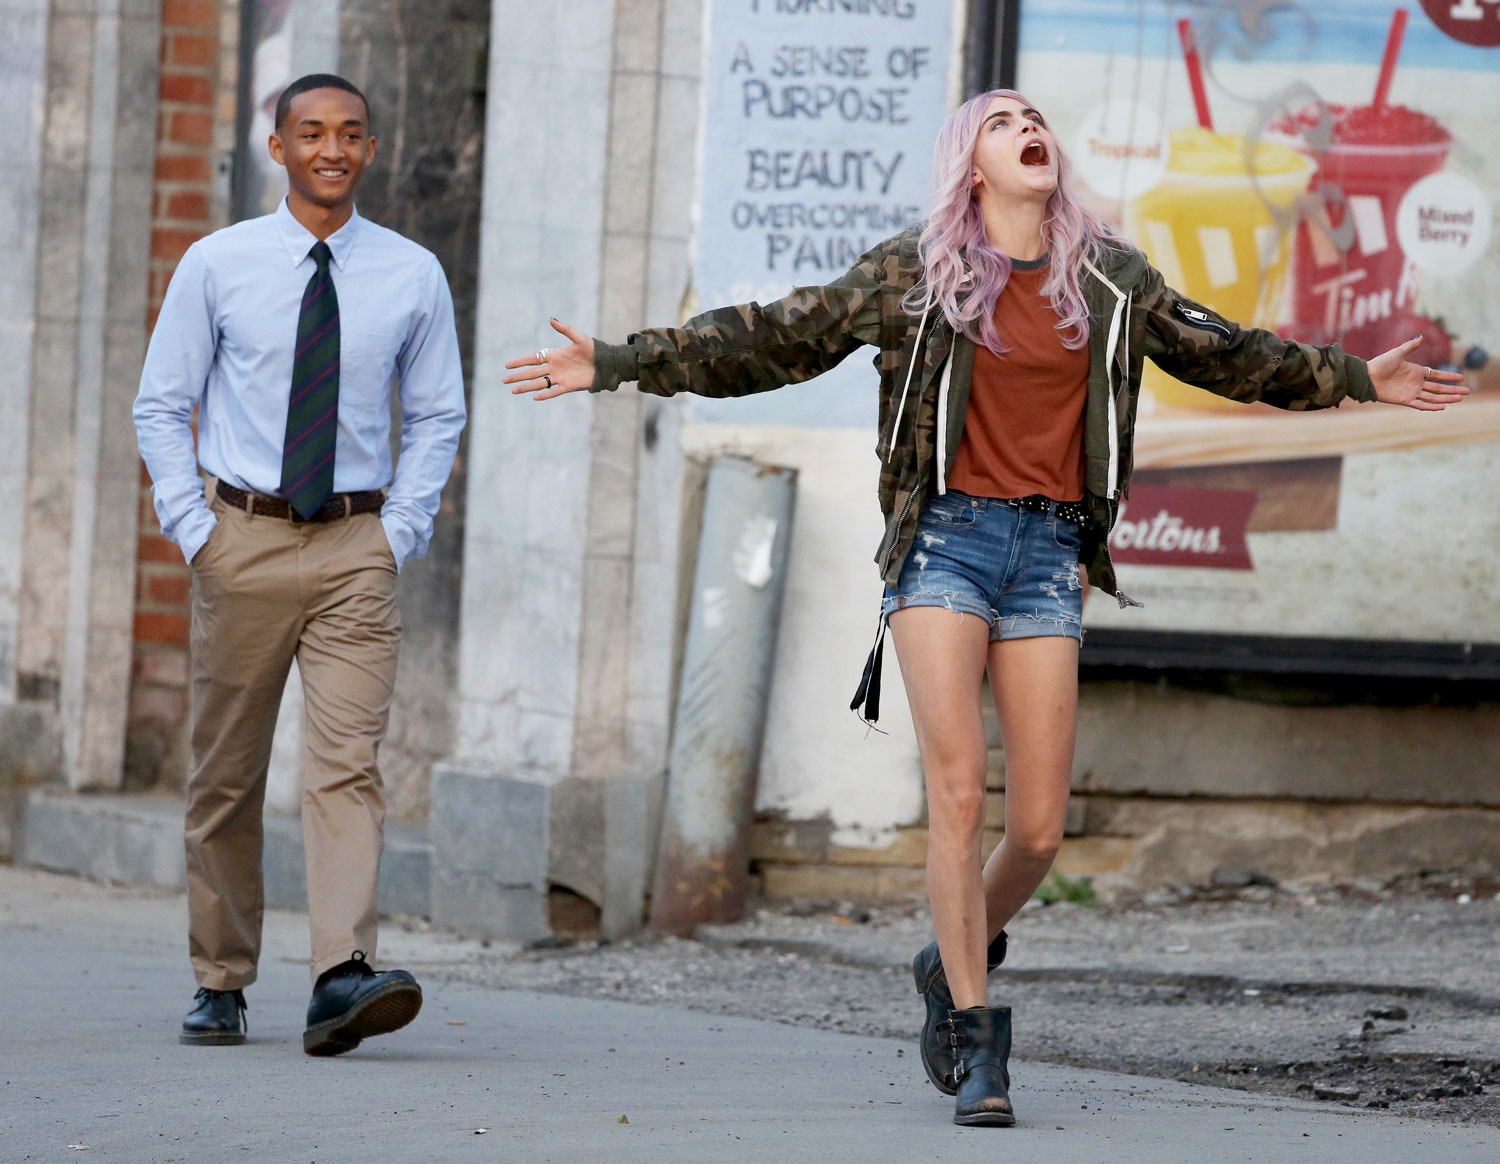 EXCLUSIVE: LAST DAY OF FILMING! Cara Delevingne and Jaden Smith are Spotted on the Toronto set of 'Life in a Year'